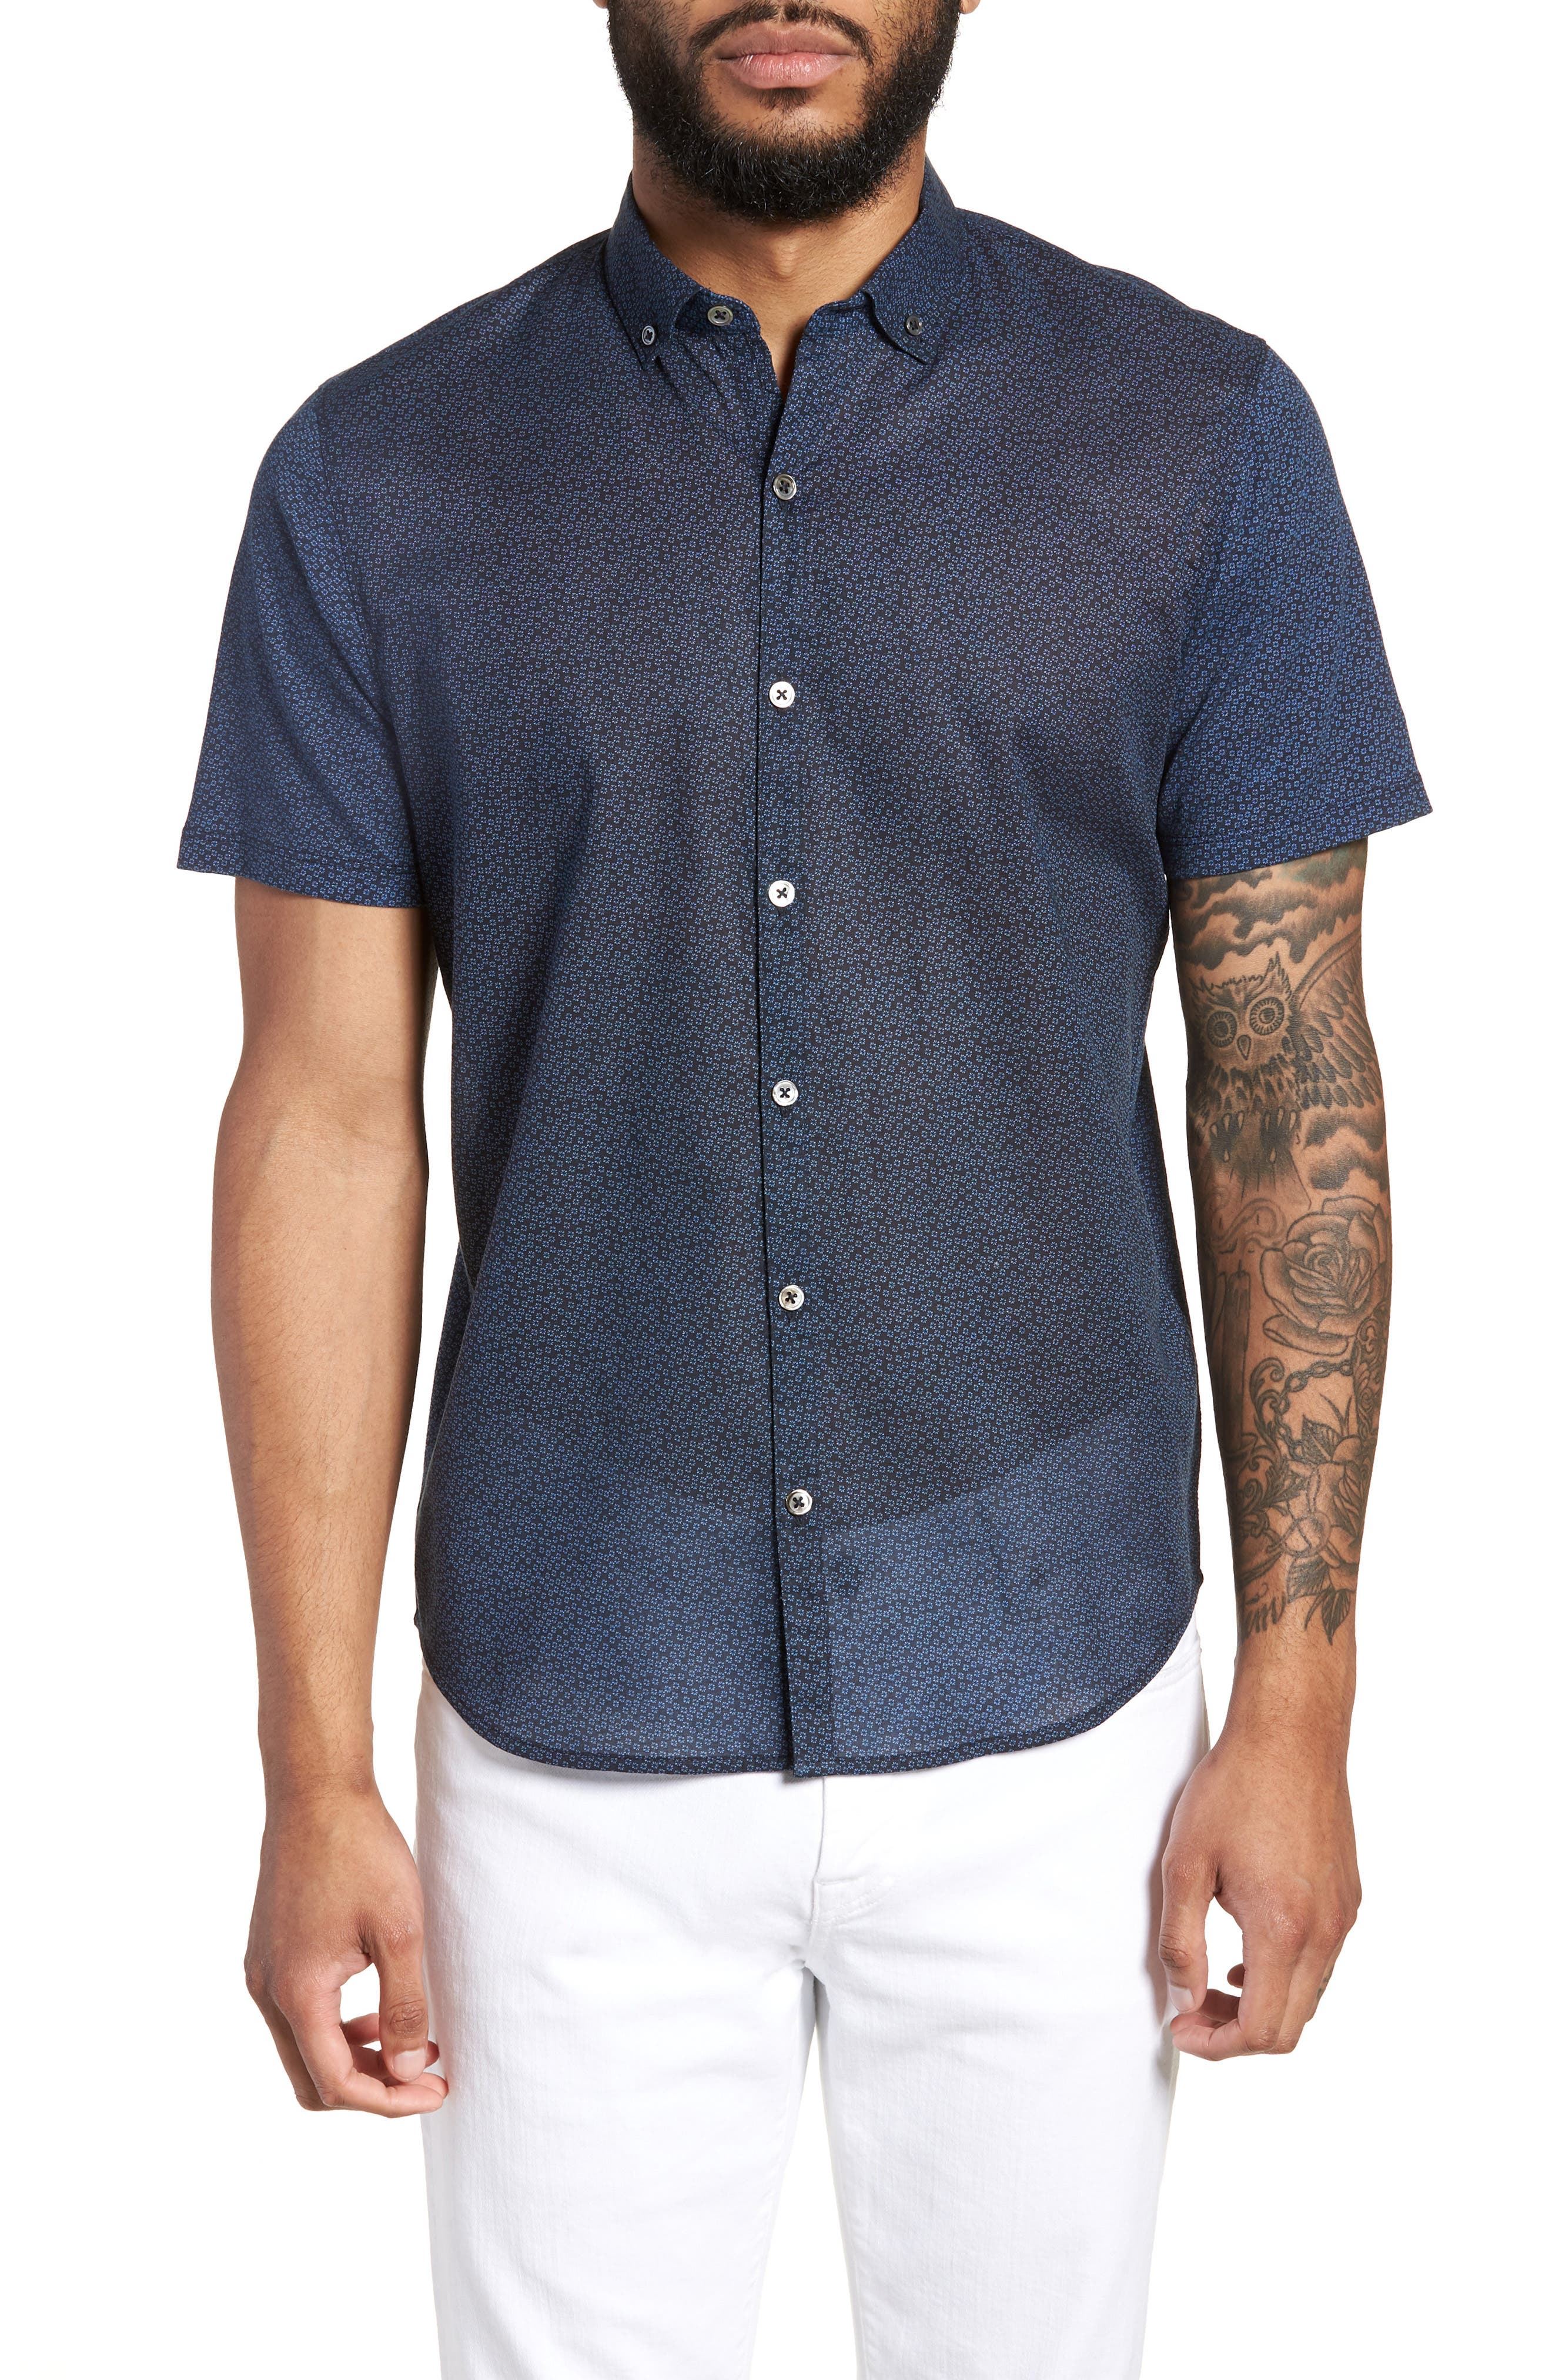 Clyde Slim Fit Sport Shirt,                         Main,                         color, Navy